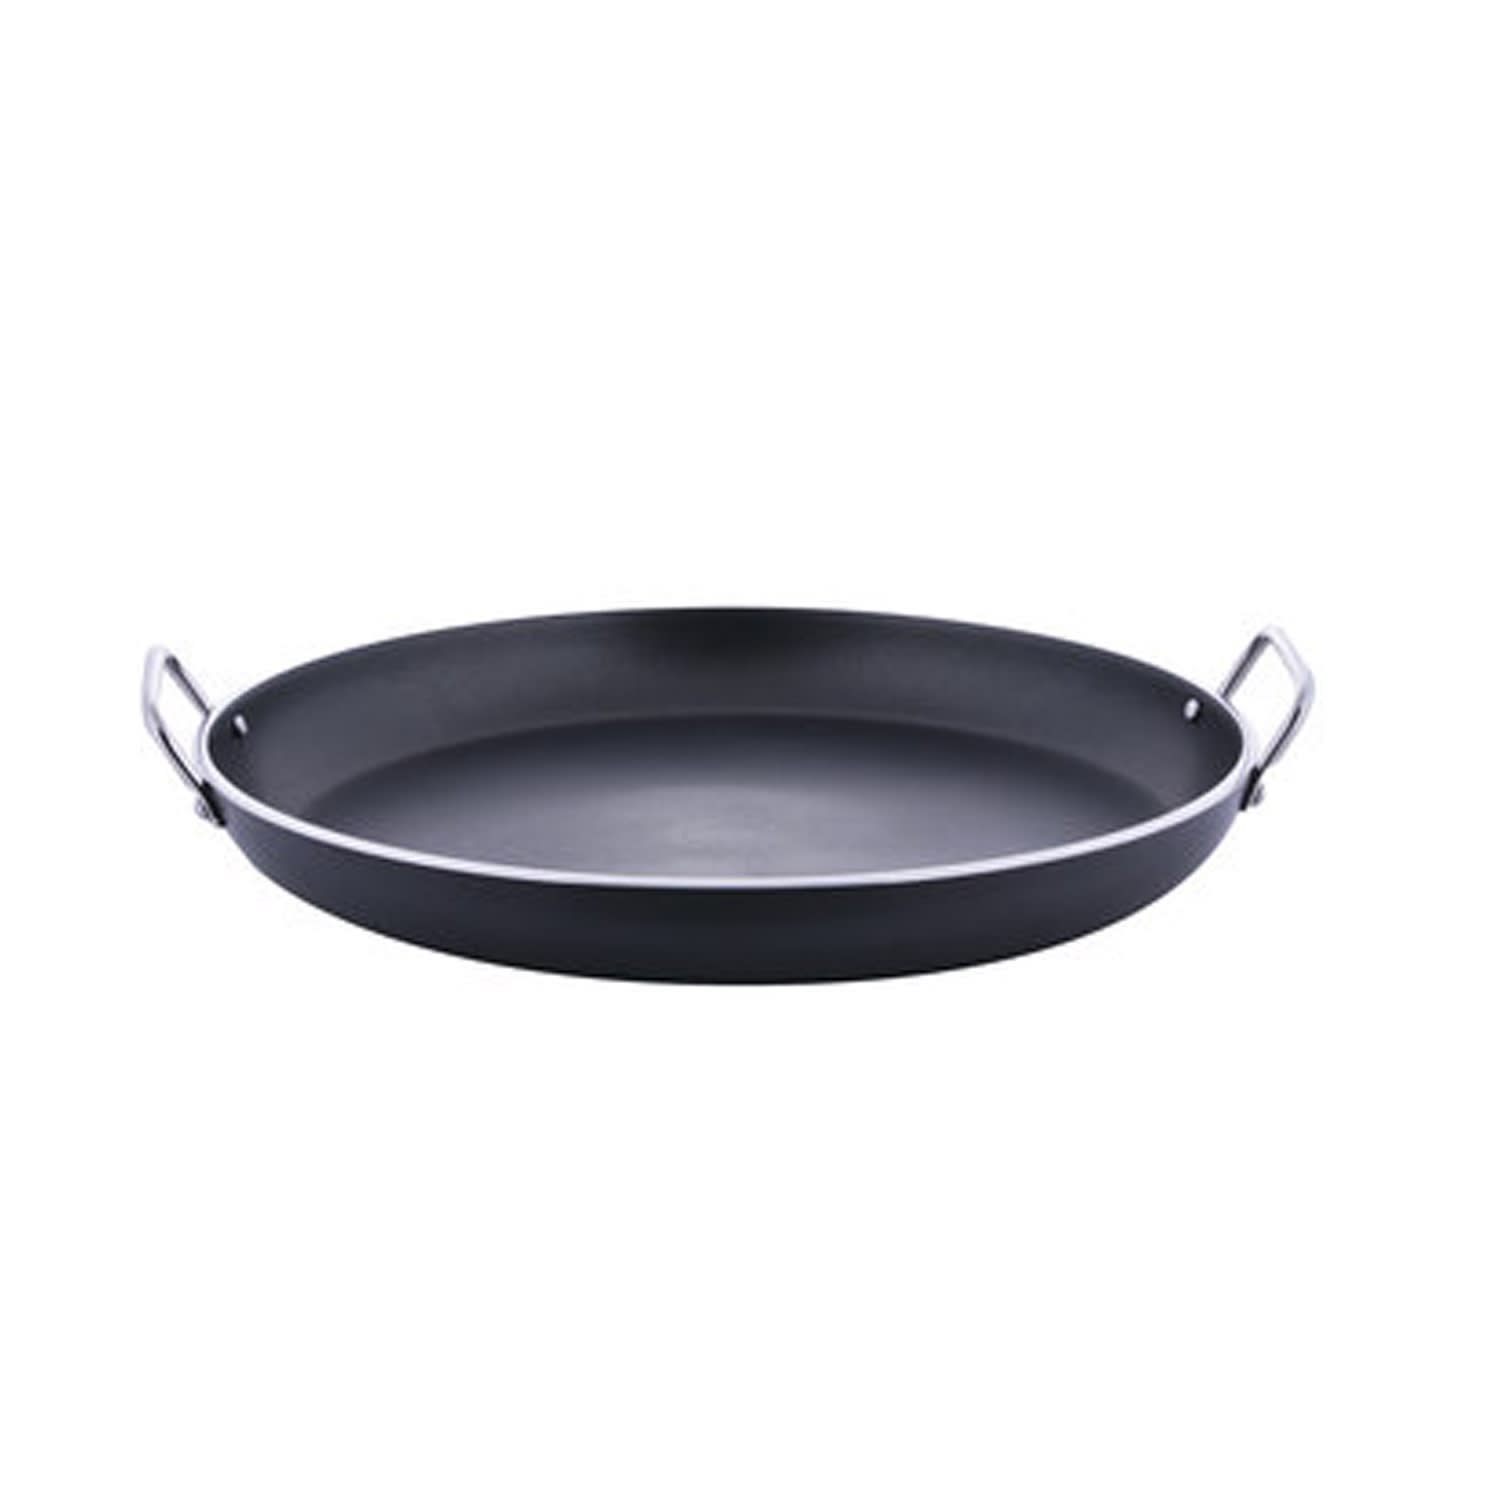 Volcano Cookware Medium Millennium Pan